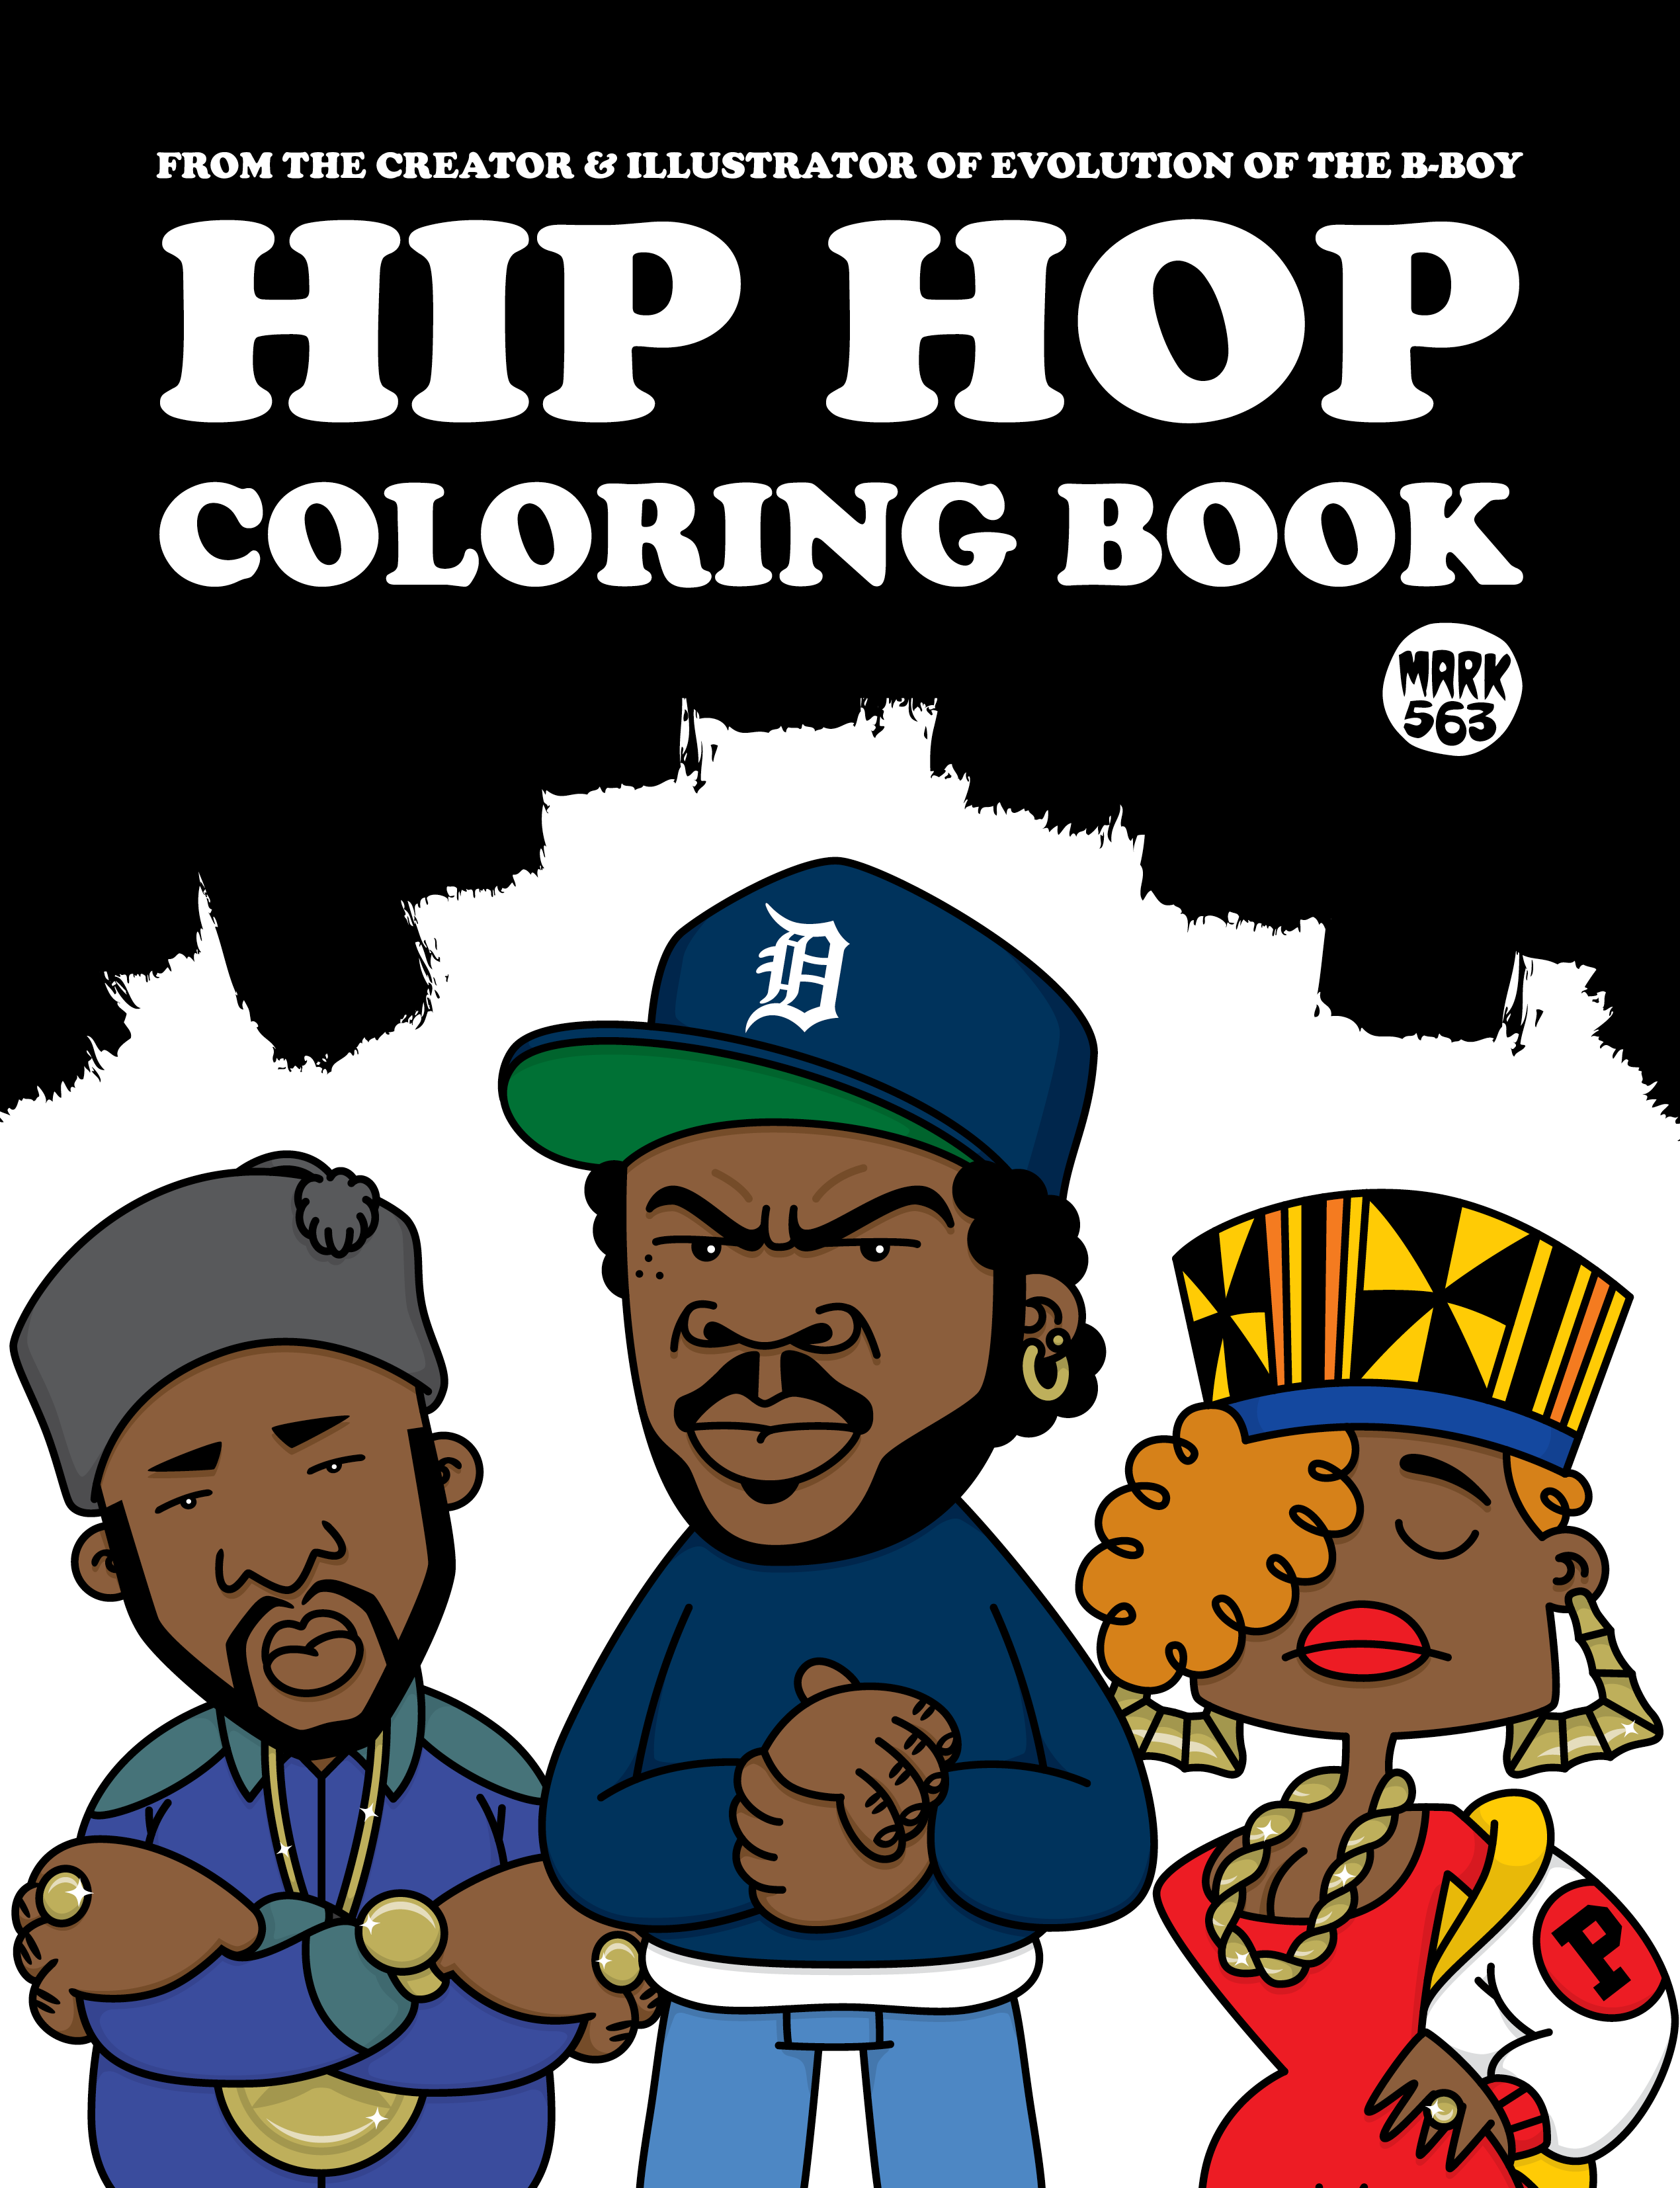 the evolution of hip hop Hip hop music, also called hip-hop hip hop's early evolution occurred as sampling technology and drum machines became widely available and affordable turntablist techniques such as scratching and beatmatching developed along with the breaks and jamaican toasting.